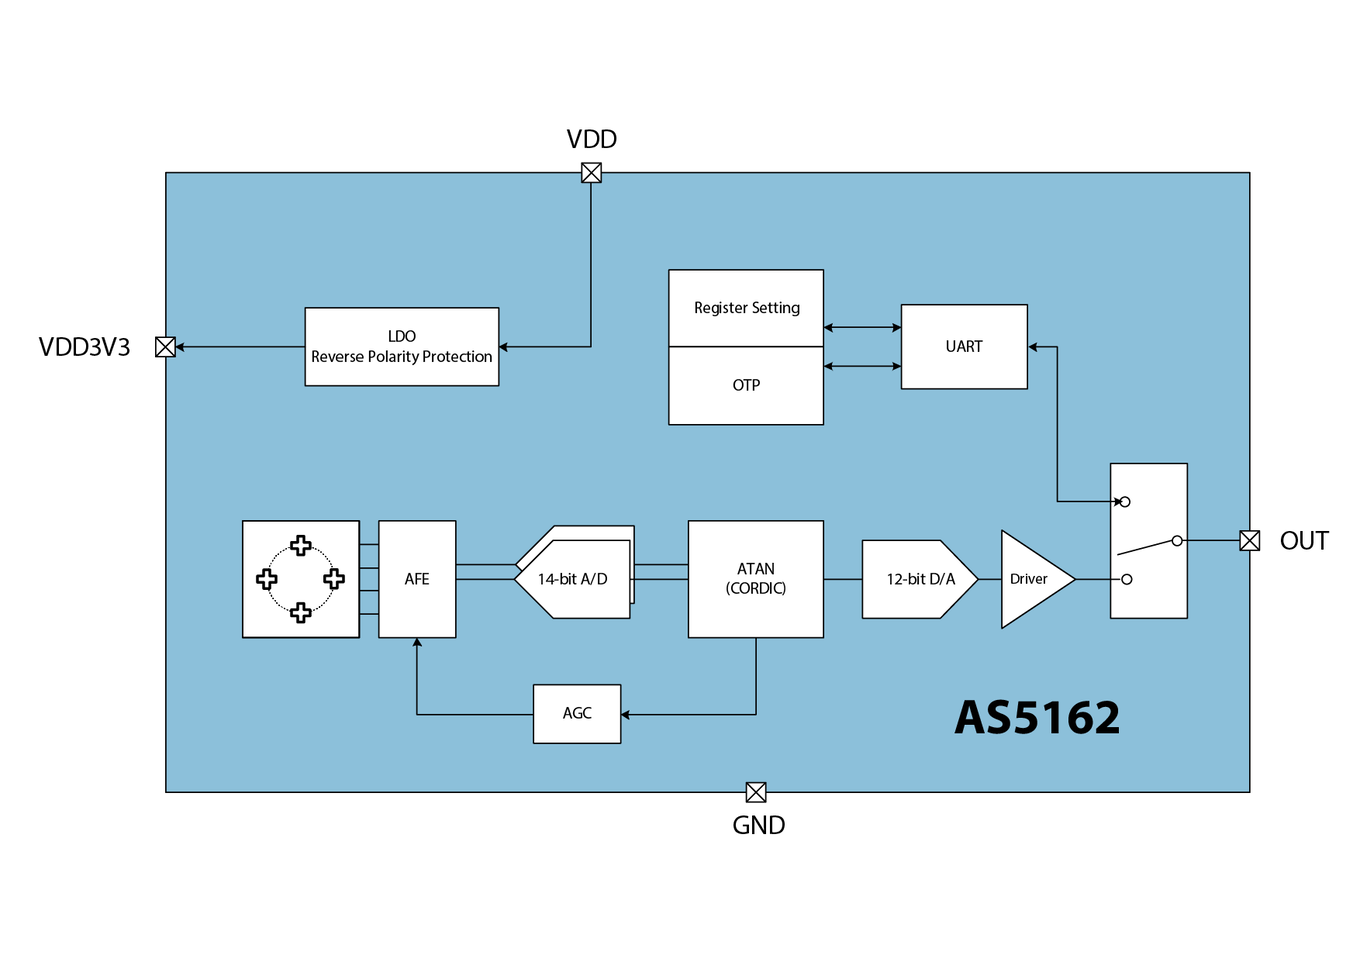 AS5162 Block Diagram